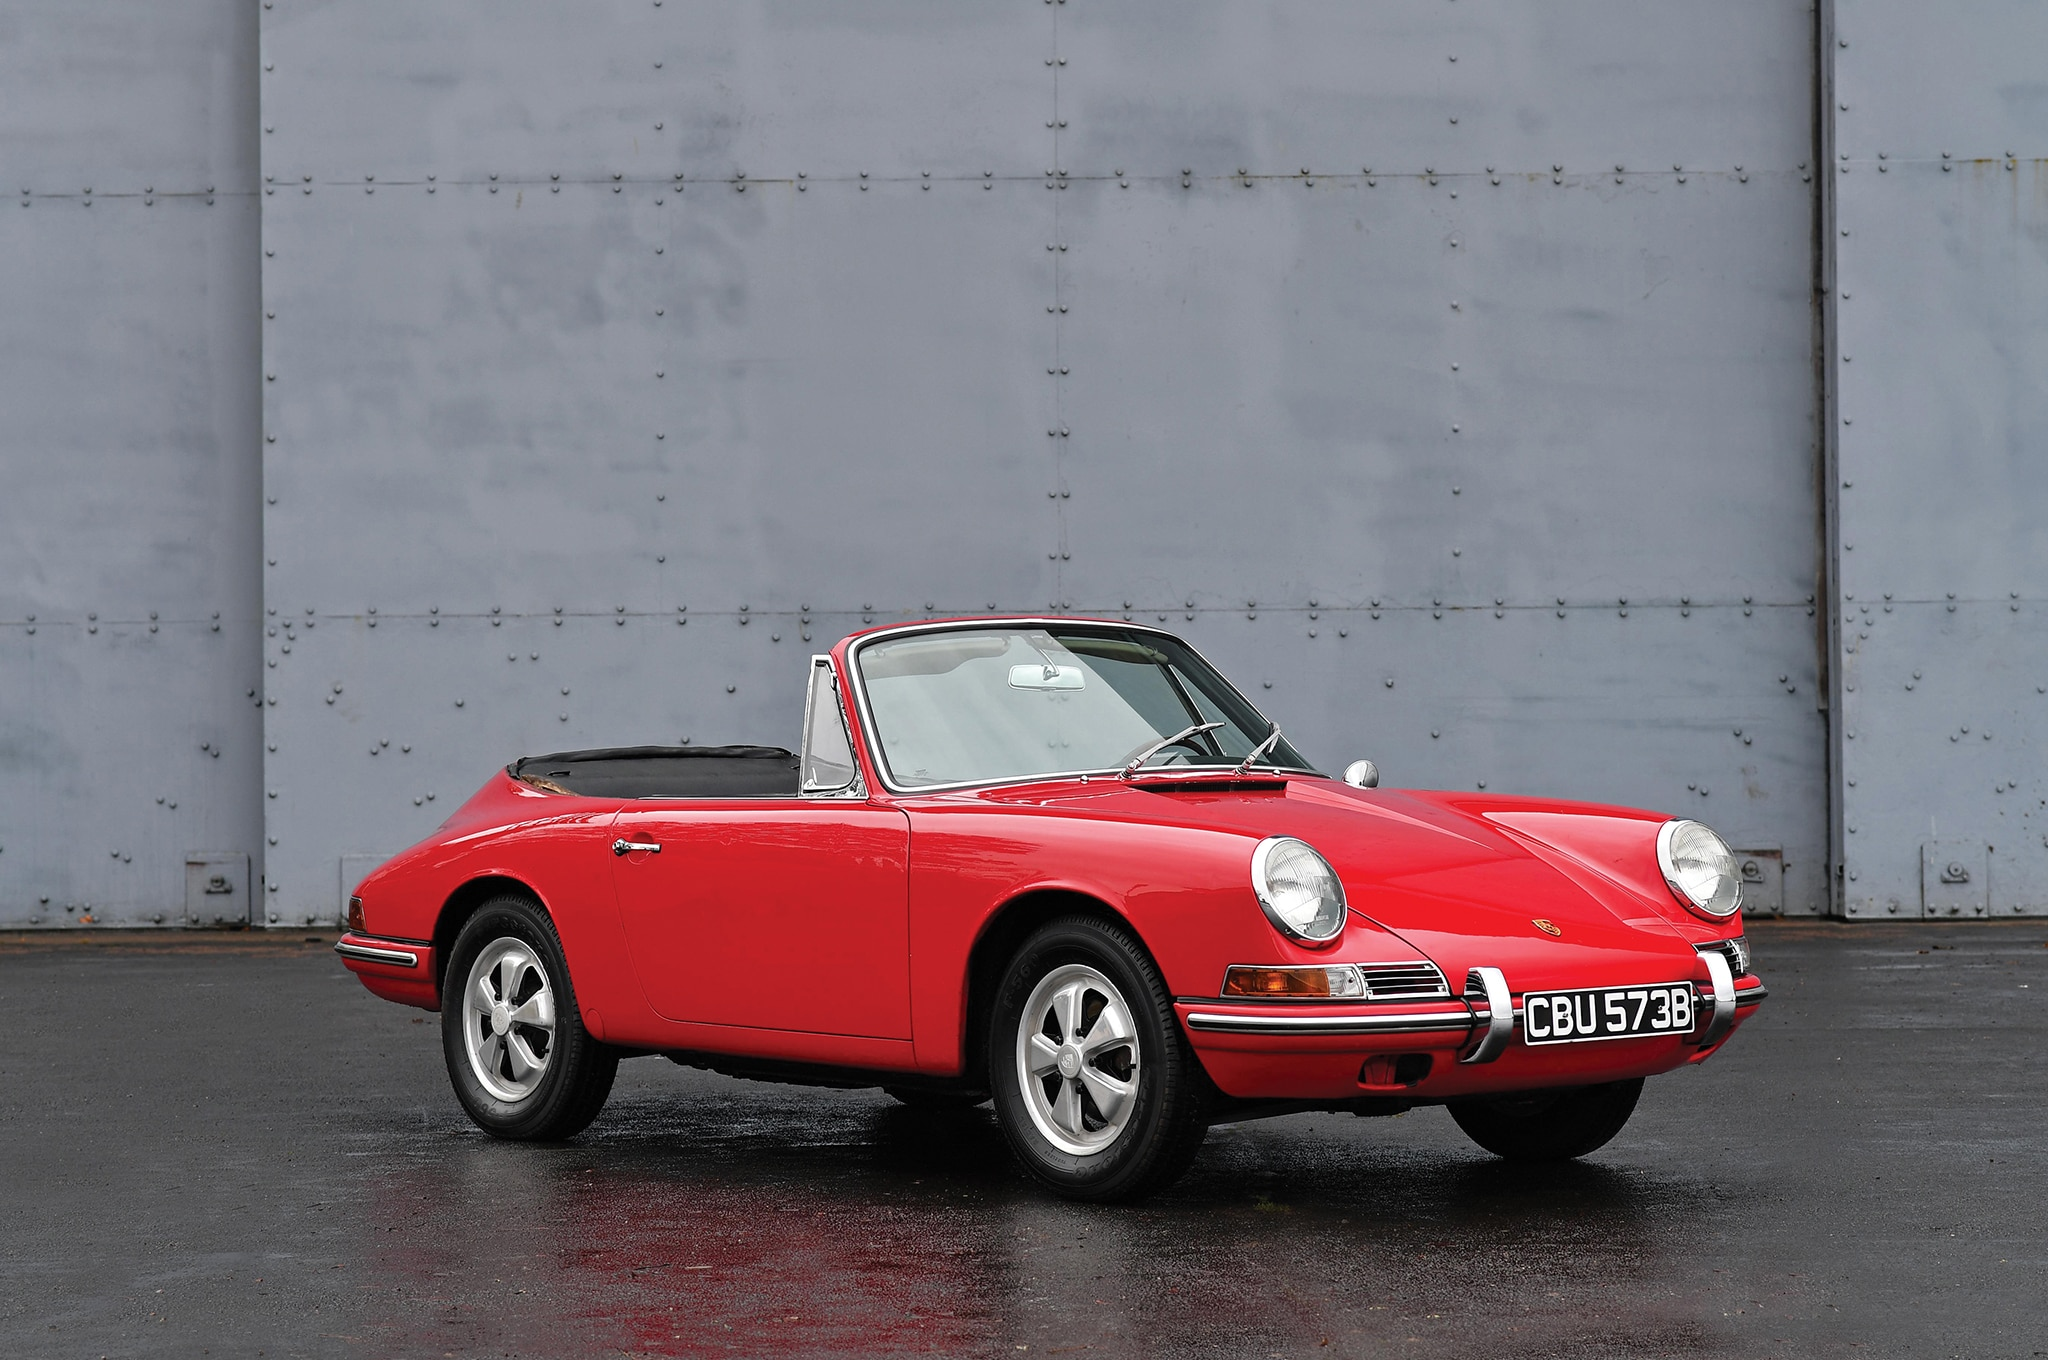 Just Listed: 1964 Porsche 901 Cabriolet Prototype is the First Drop